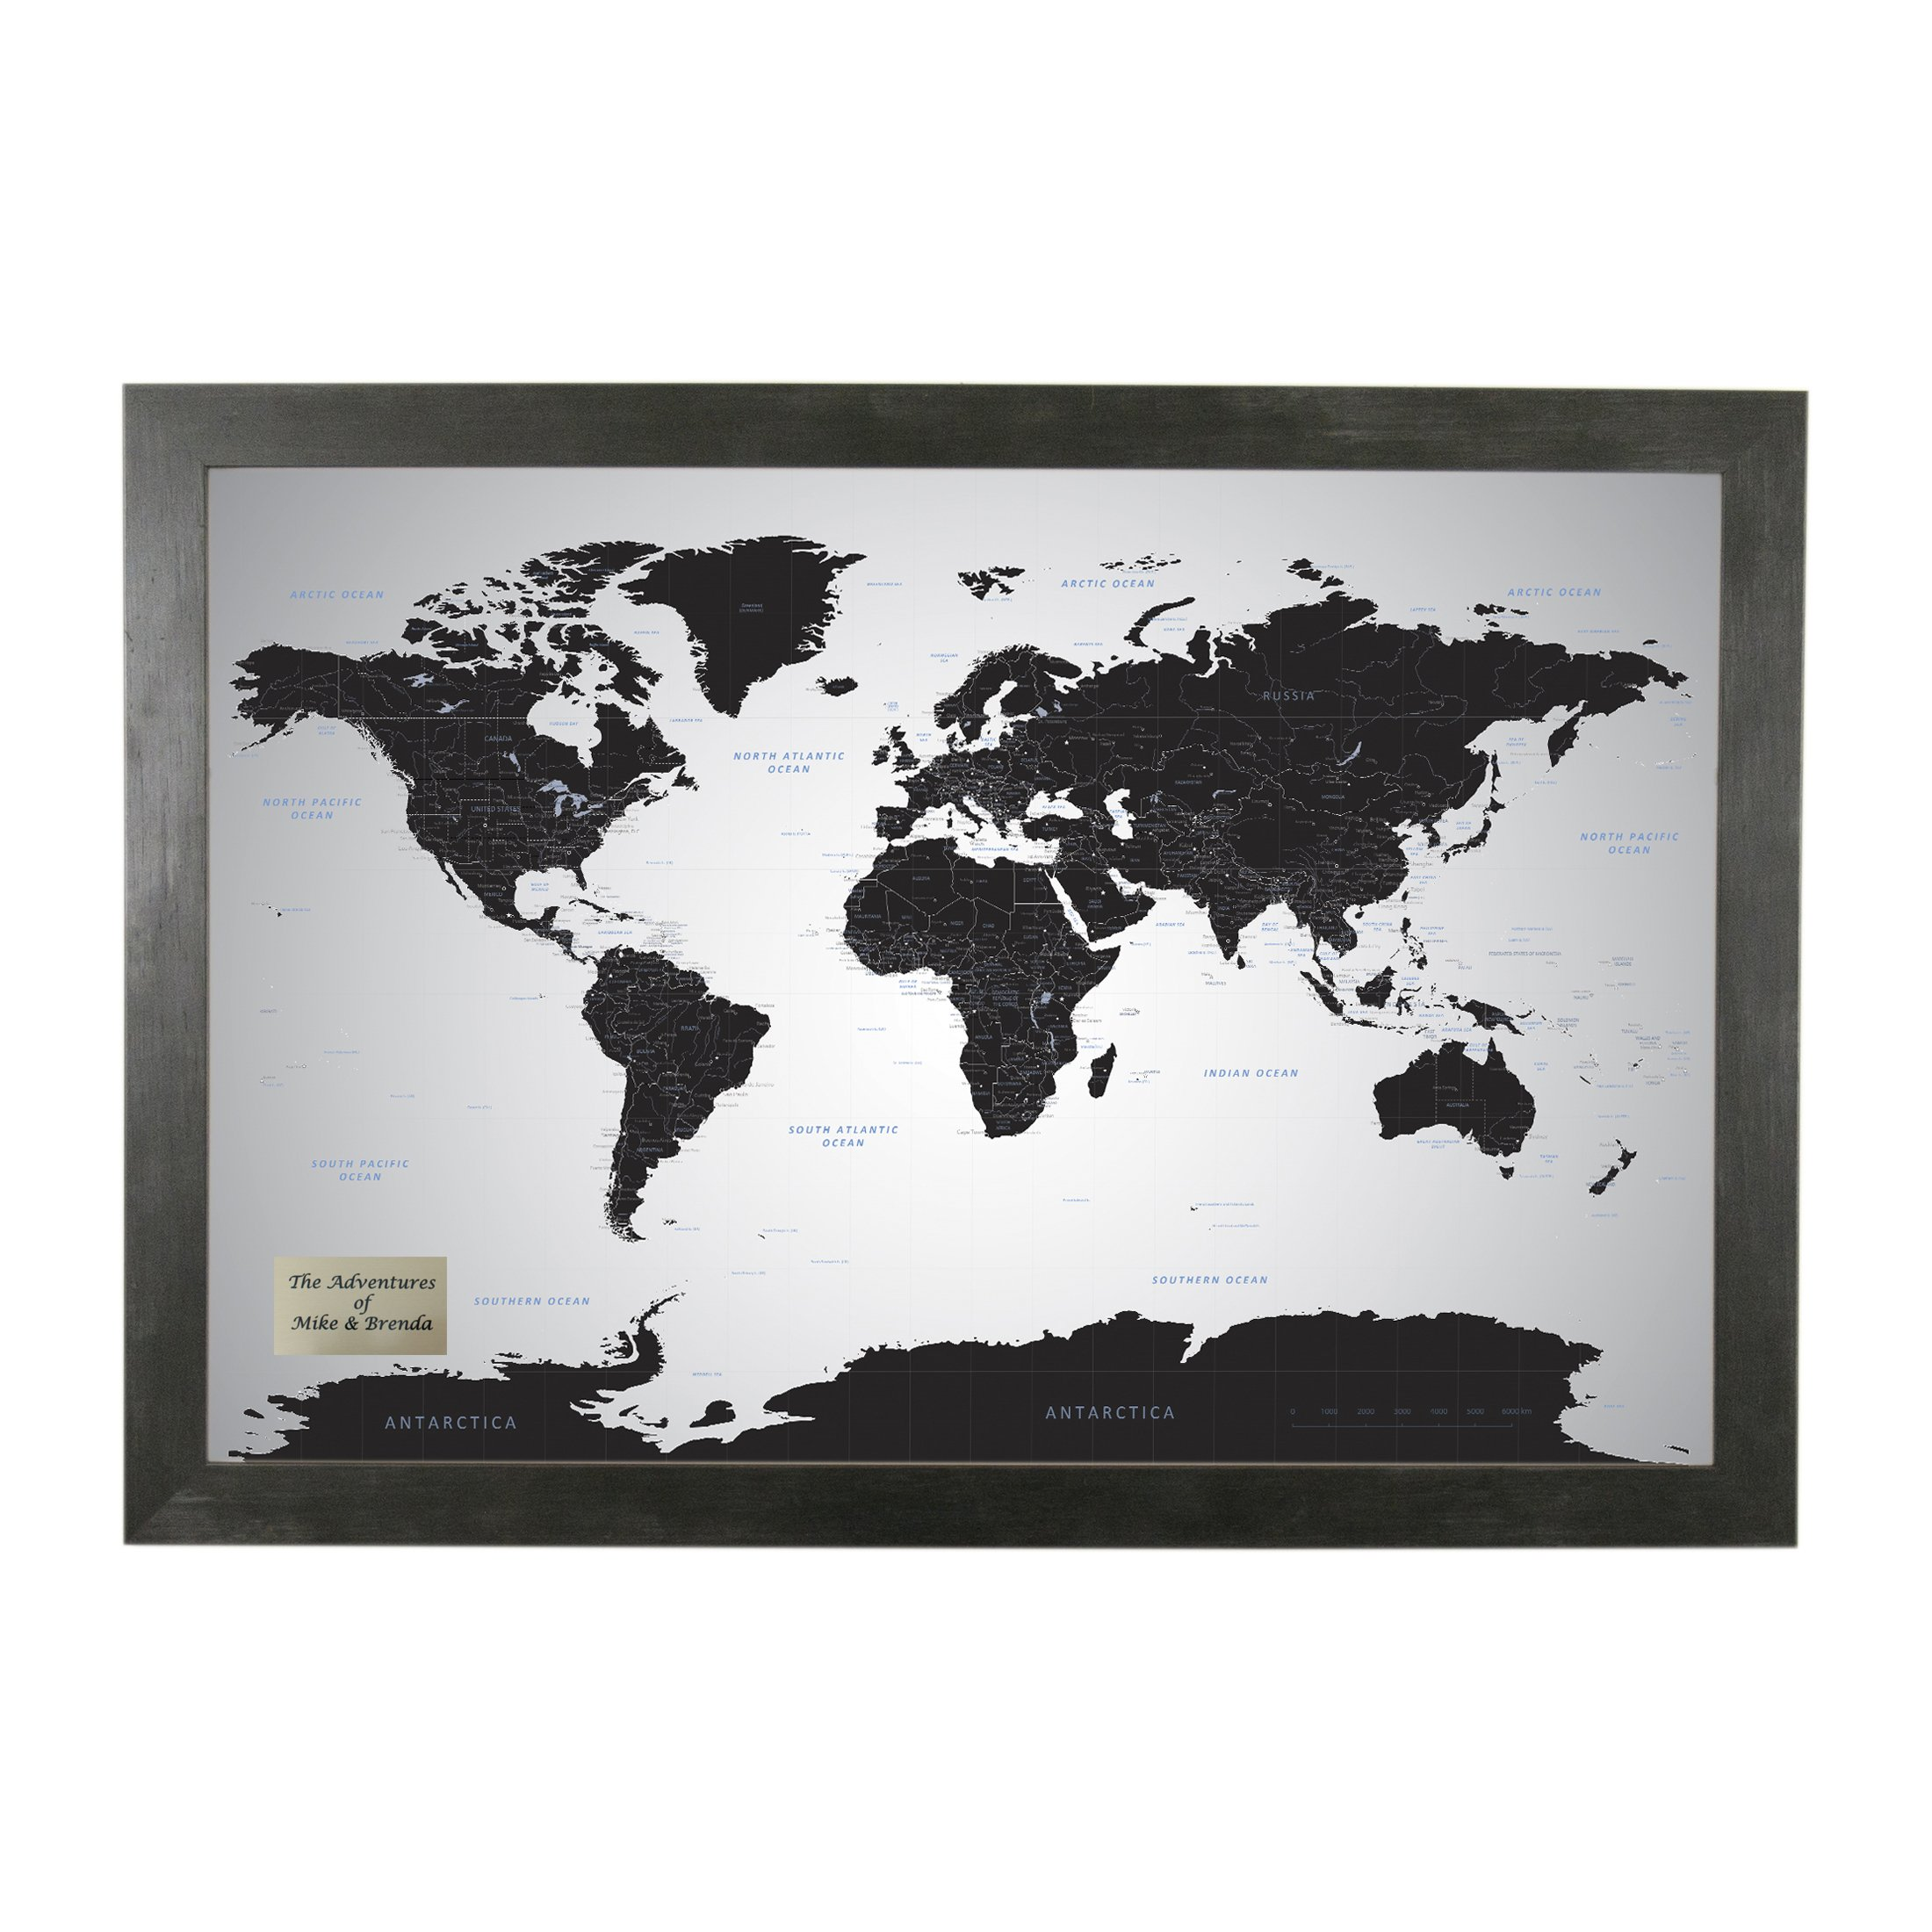 Push Pin Travel Maps Personalized Black Ice World with pins - 27.5 inches x 39.5 inches - Rustic Black Frame